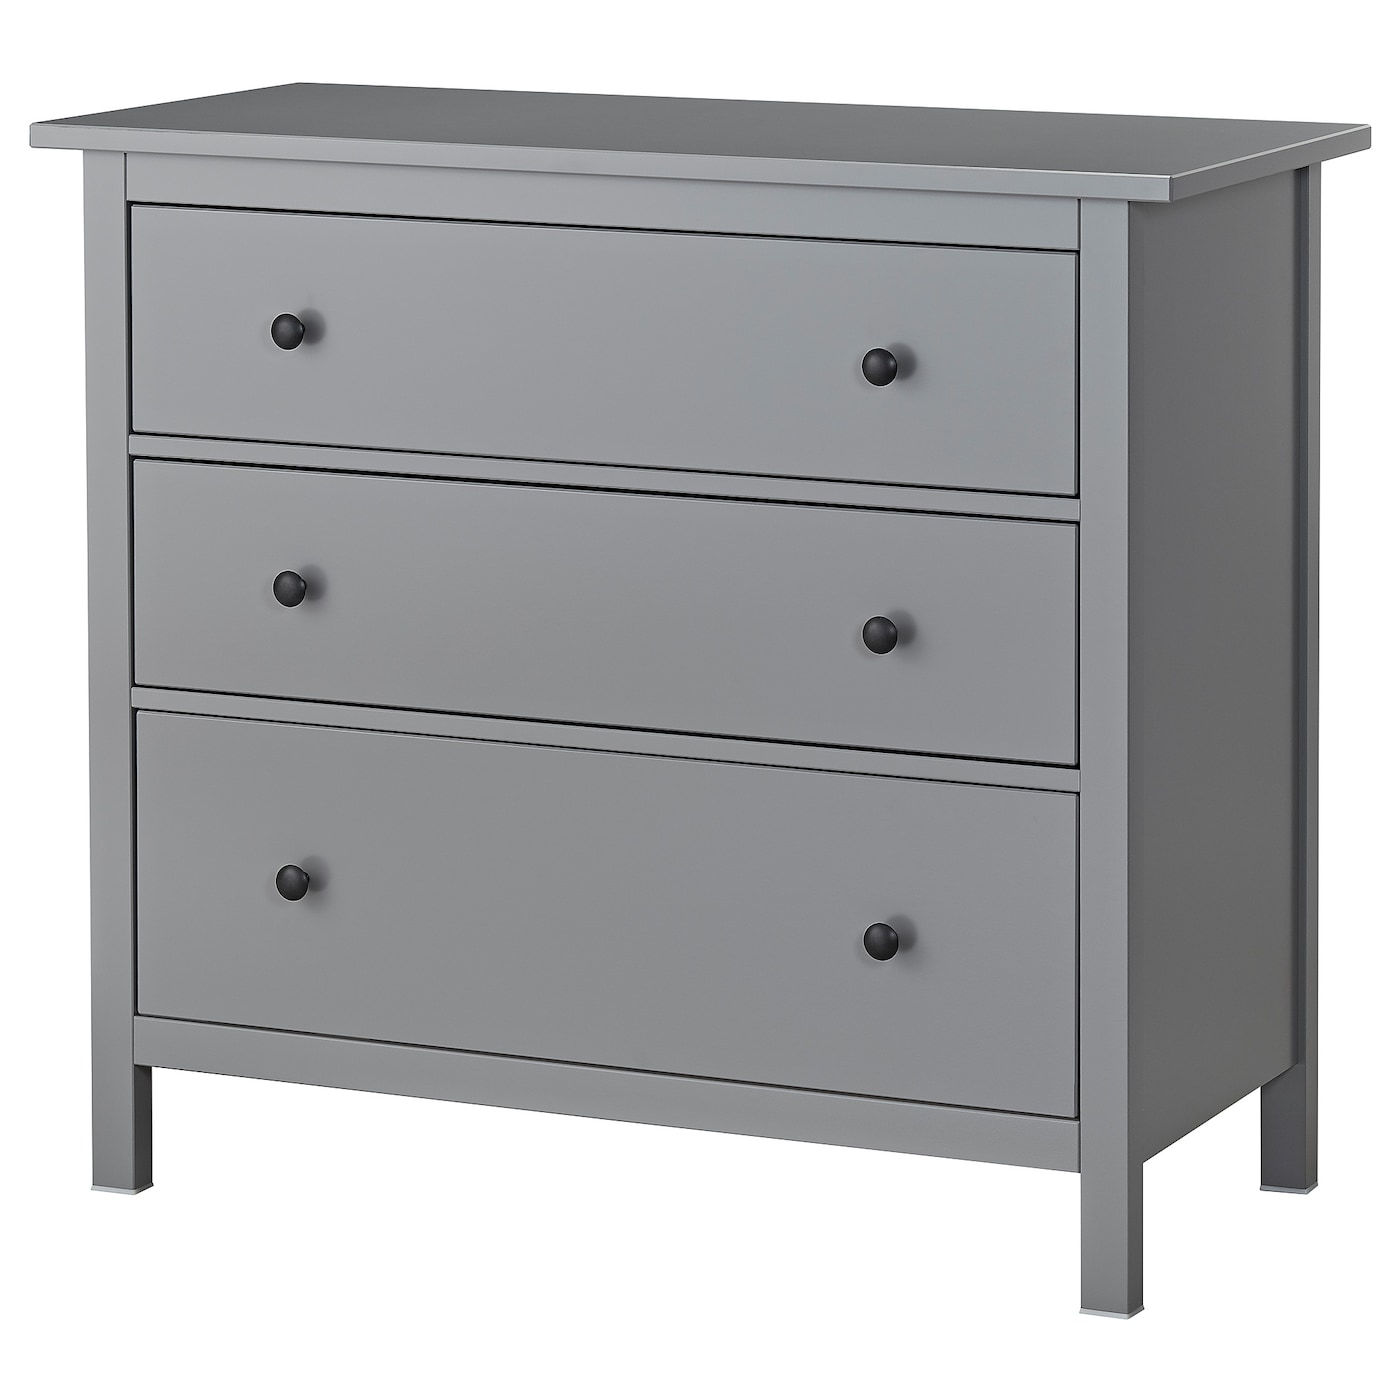 Hemnes chest of 3 drawers grey 108 x 96 cm ikea for Ikea comodino hemnes